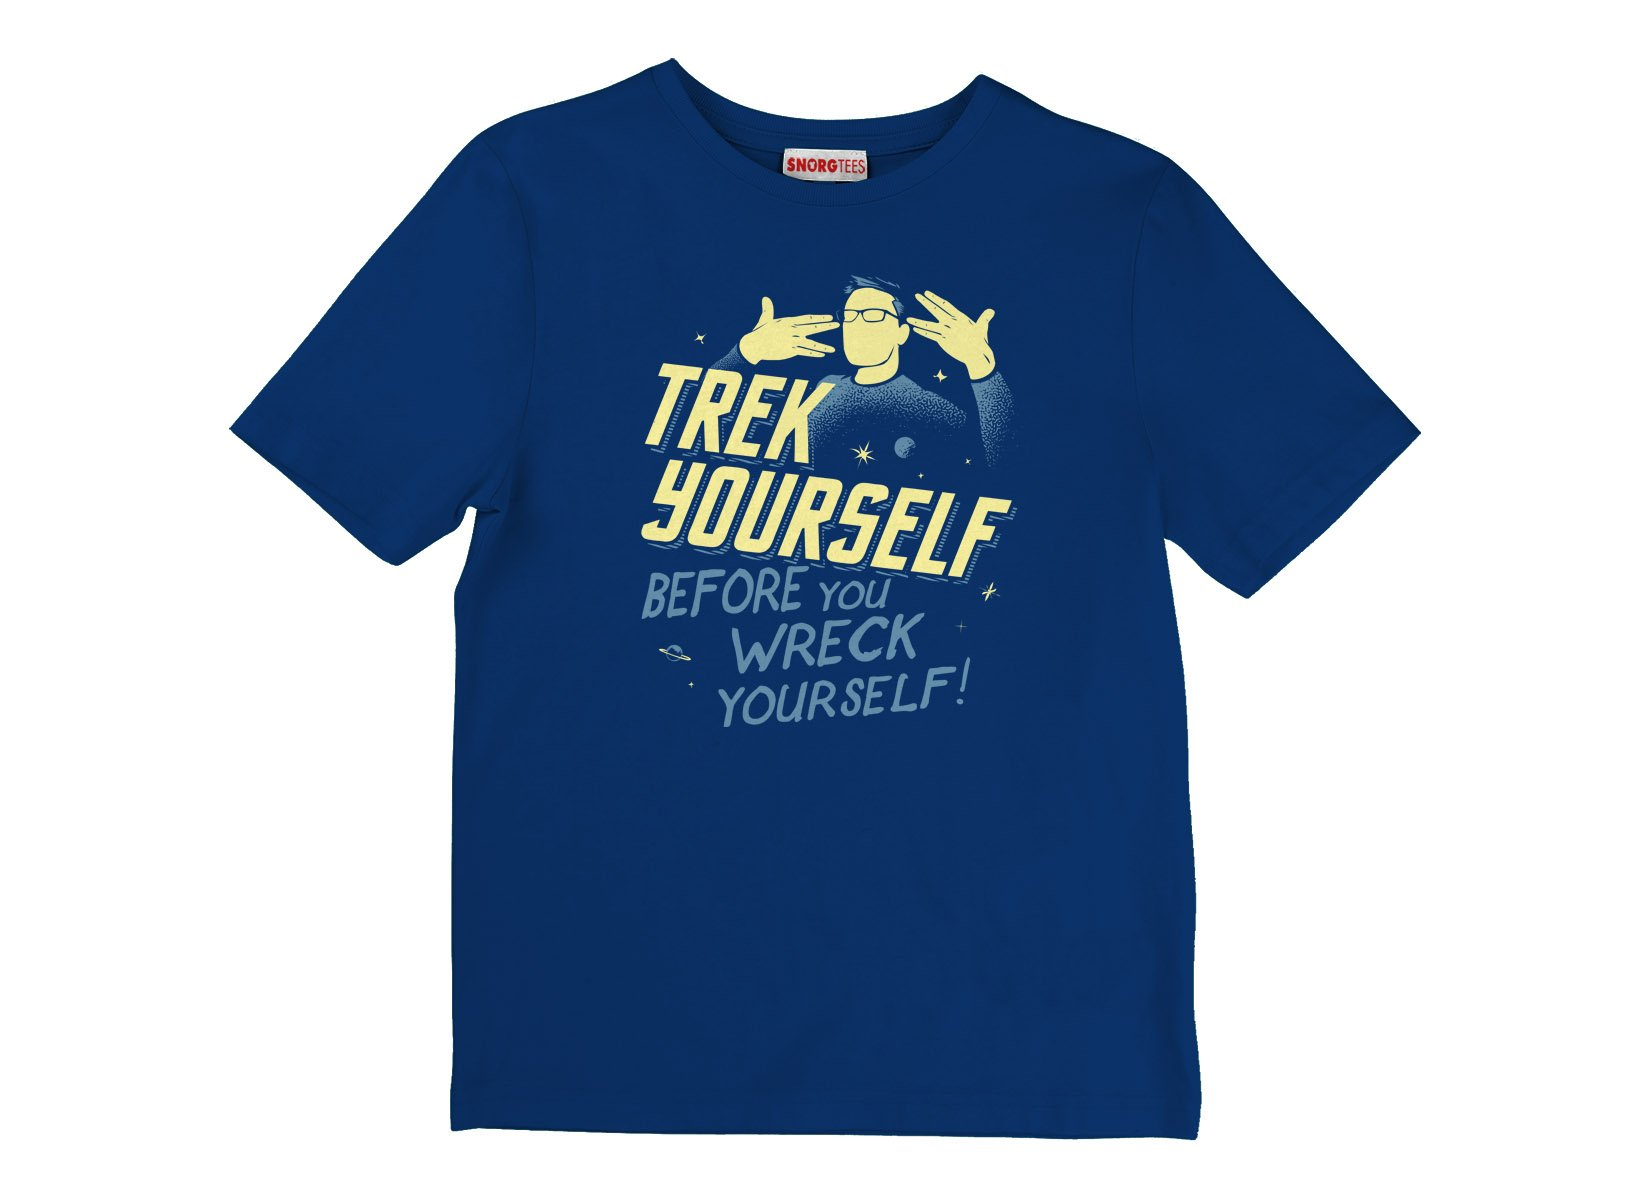 Trek Yourself Before You Wreck Yourself on Kids T-Shirt